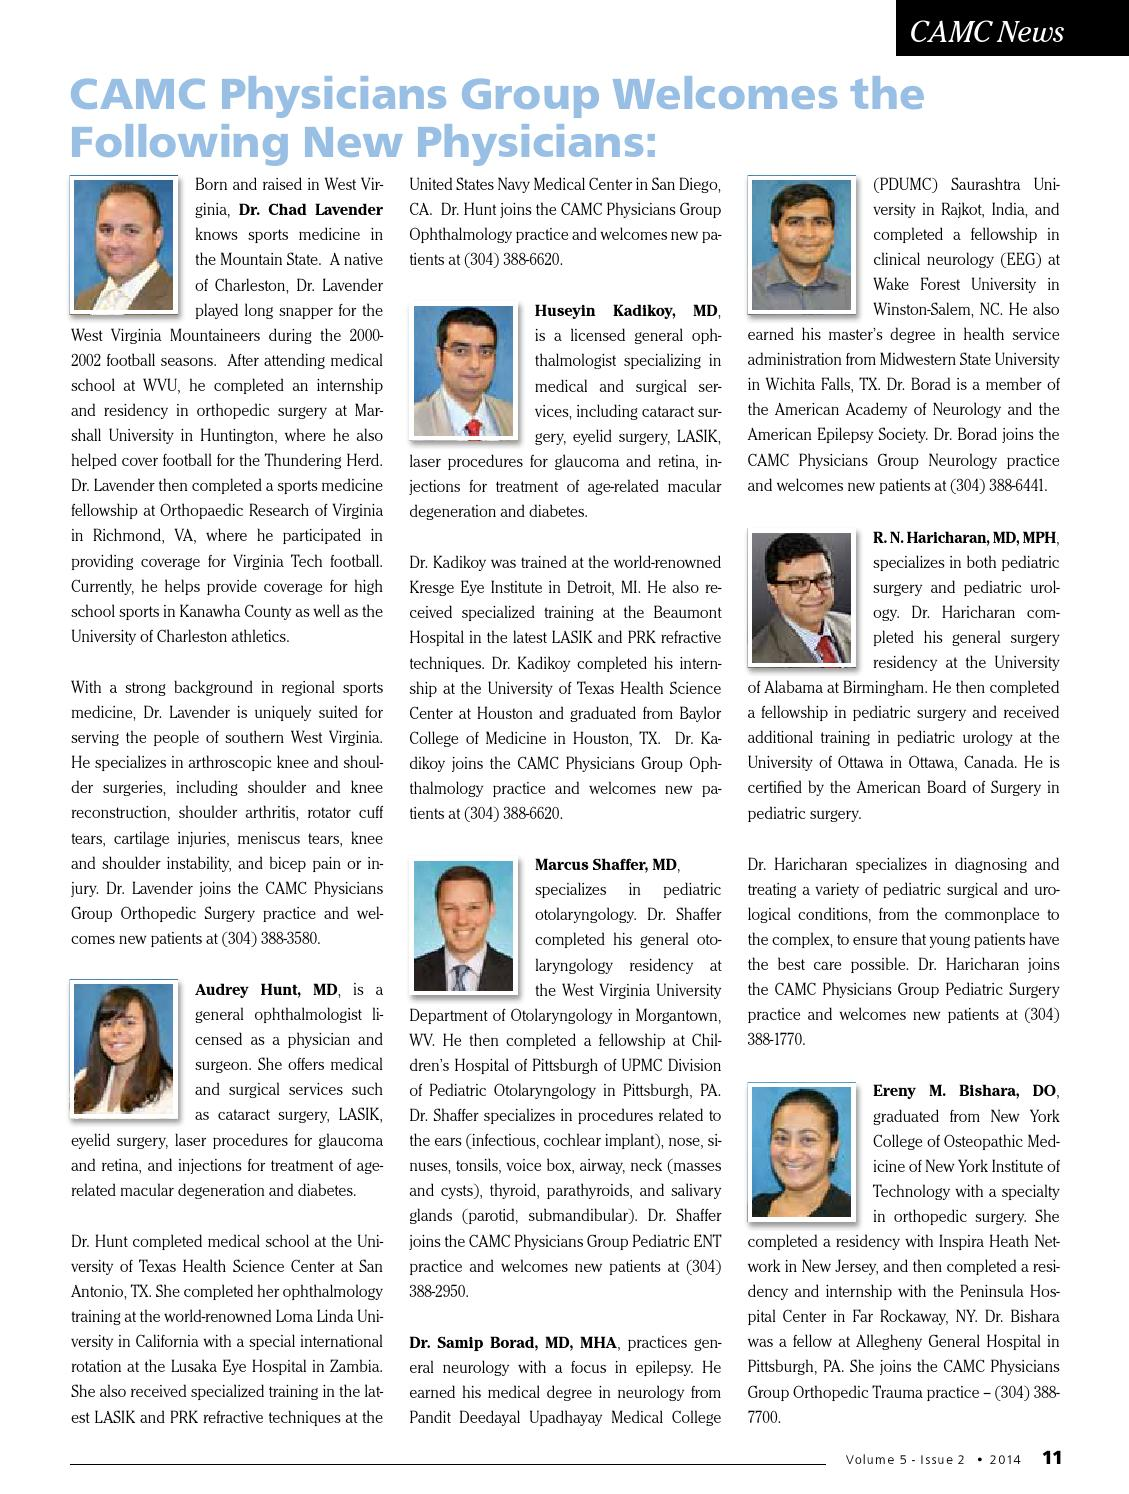 WV Physician Magazine Volume 5, Issue 2 by P  J  Hutton - issuu